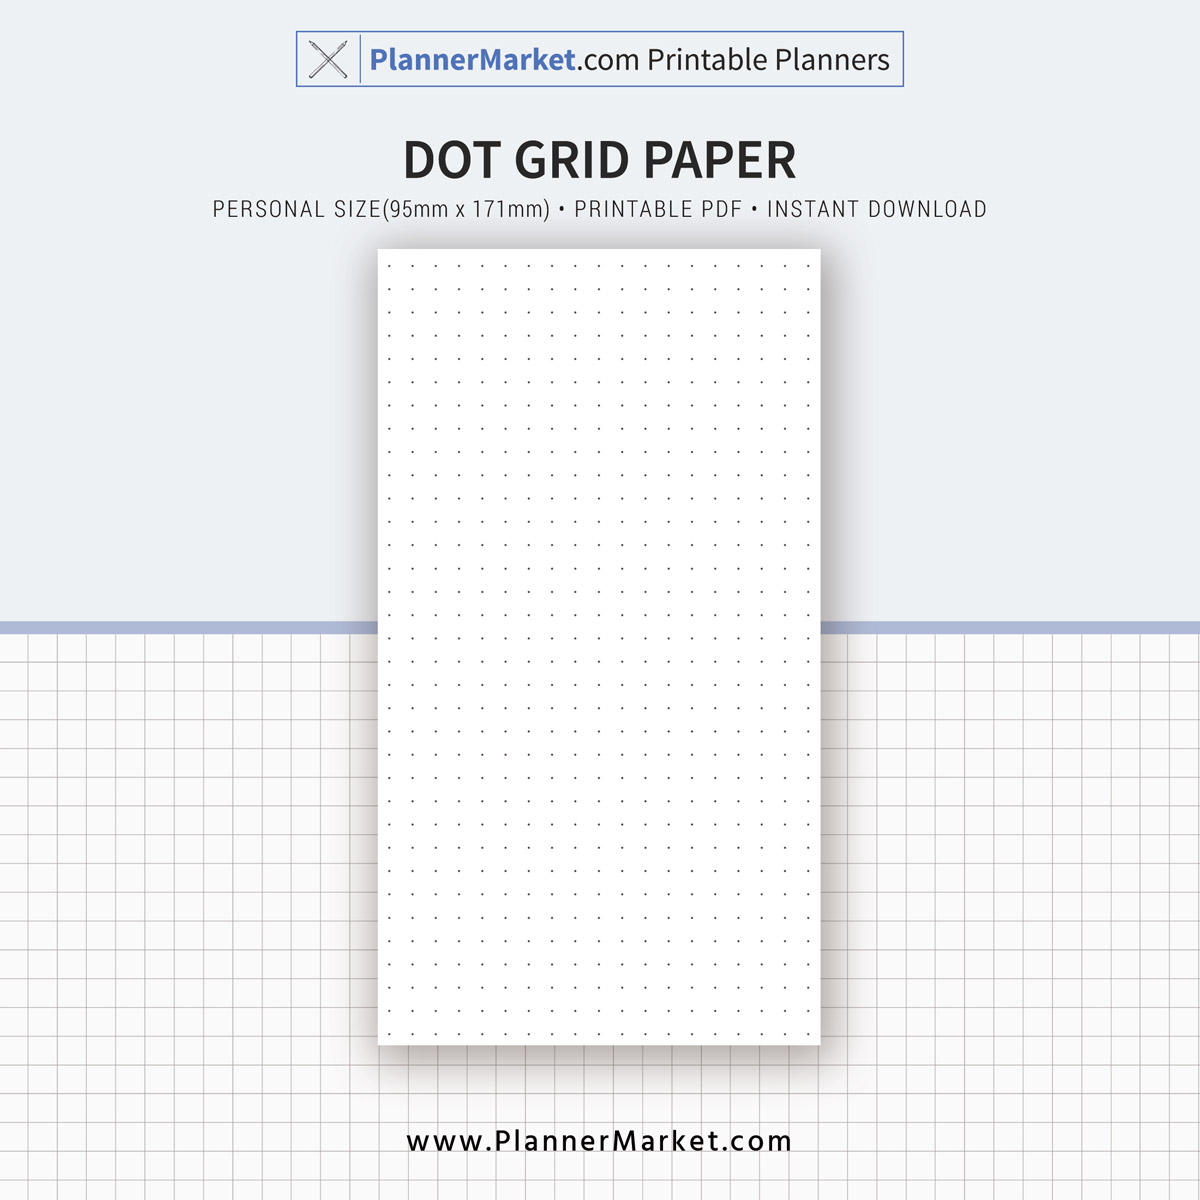 image about Dot Grid Paper Printable titled Uncomplicated Site Printable, Dot Grid, Grid, Protected Paper, Specific Dimension, Planner Inserts, Planner Binder, Fast Down load